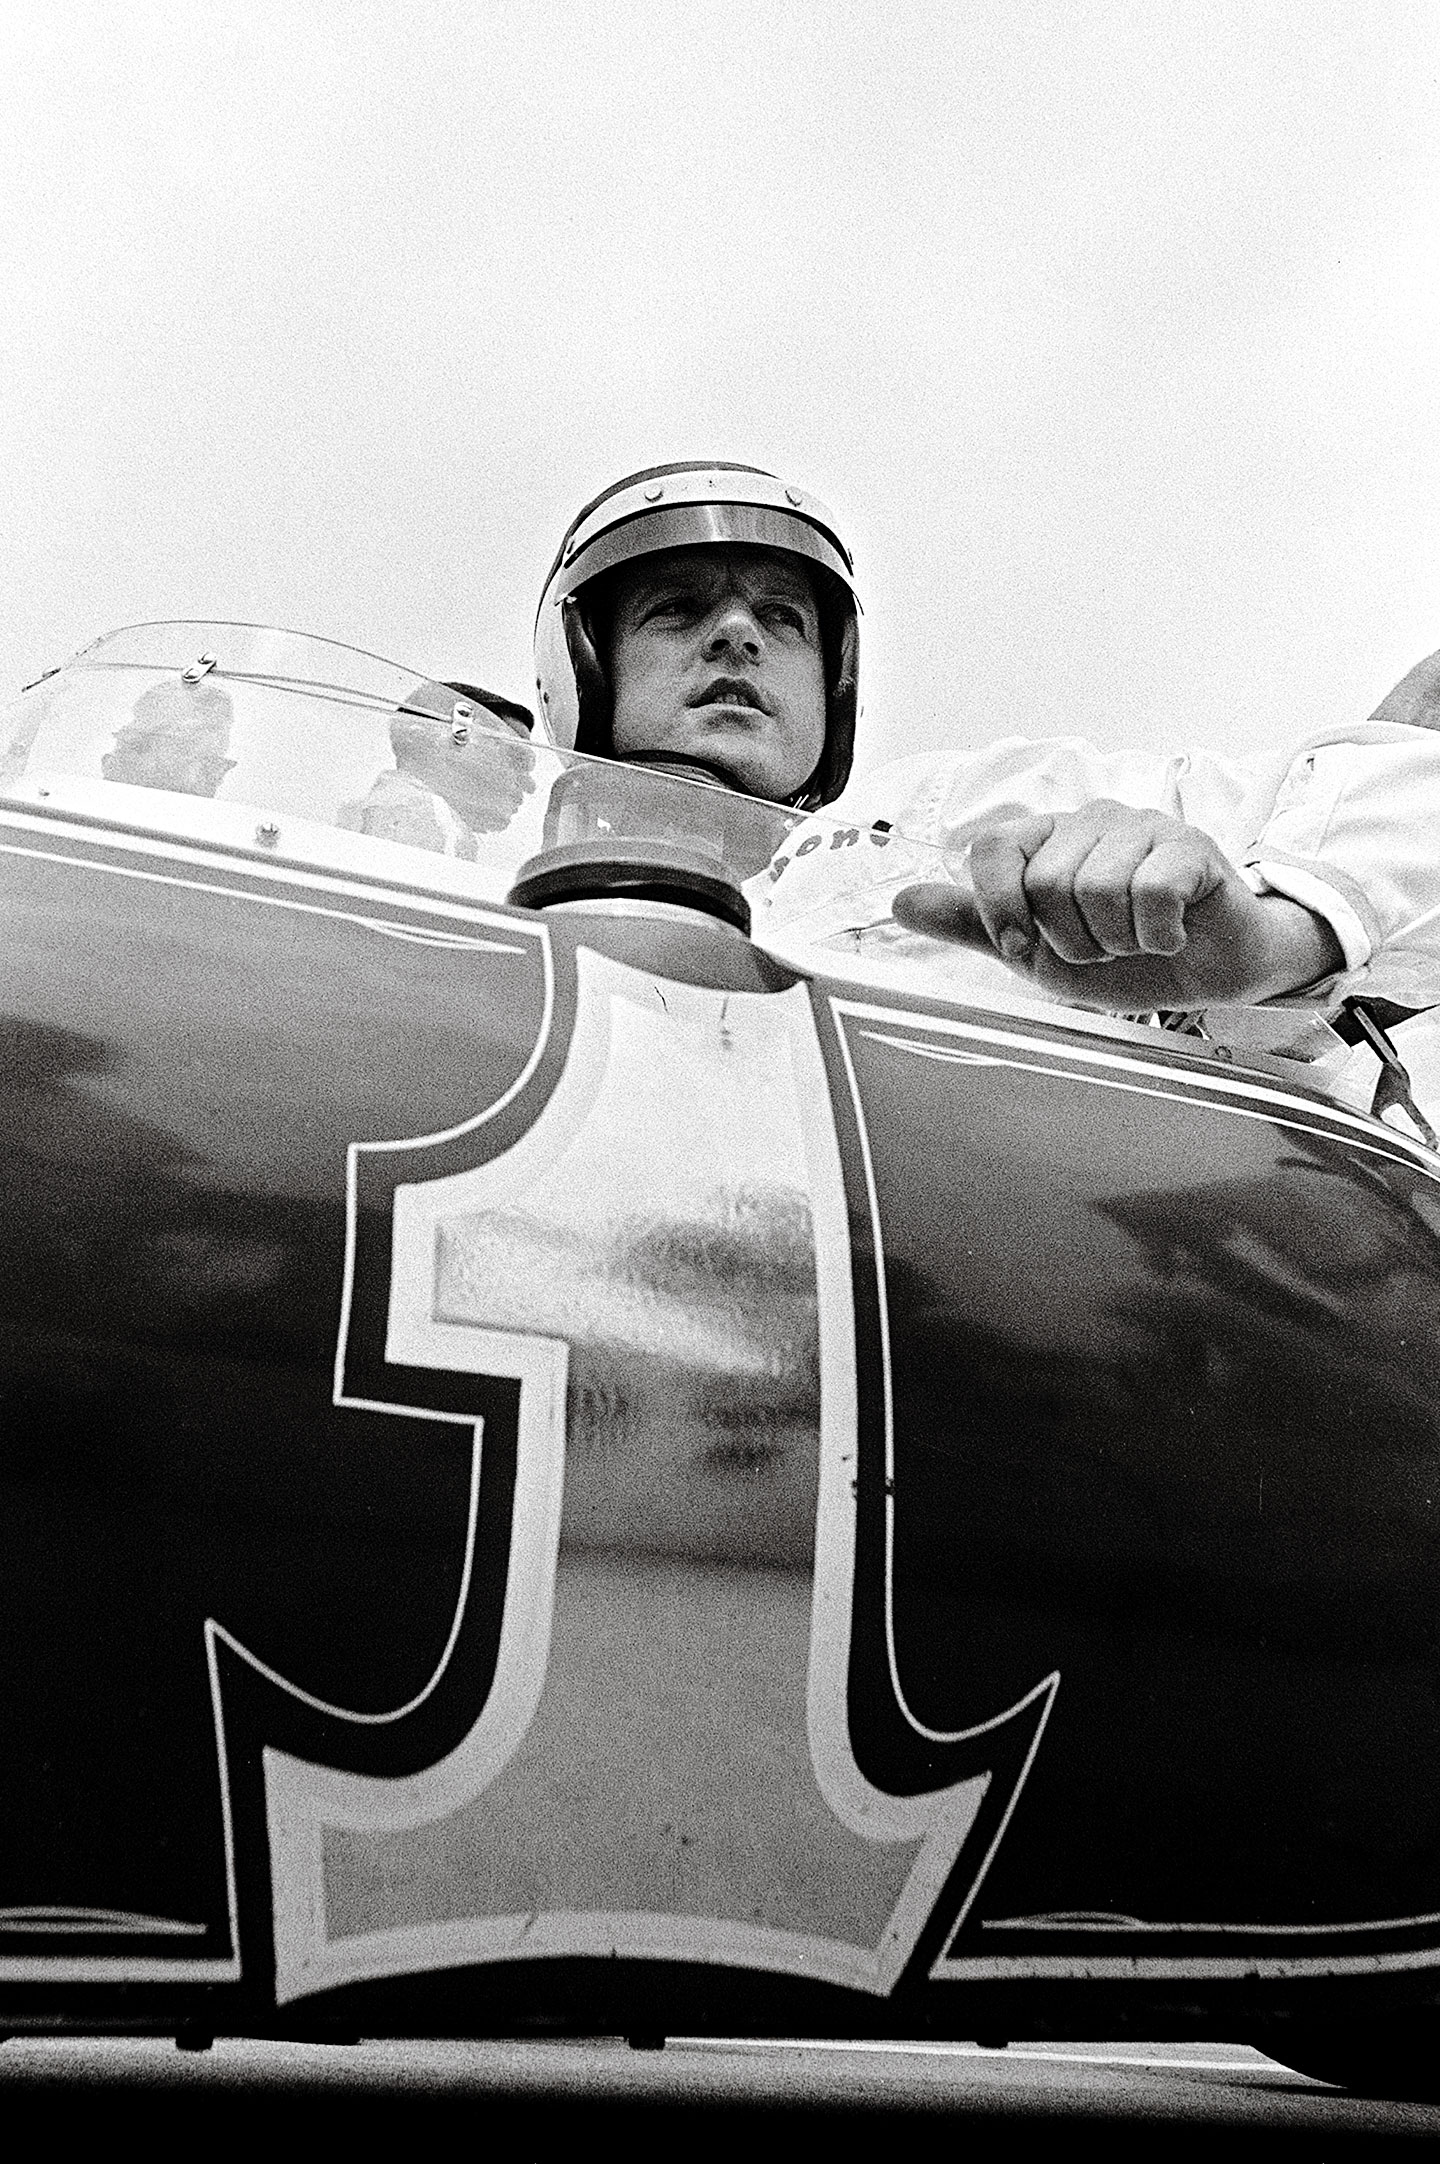 A.J. in the #1 Lotus/Ford in 1965